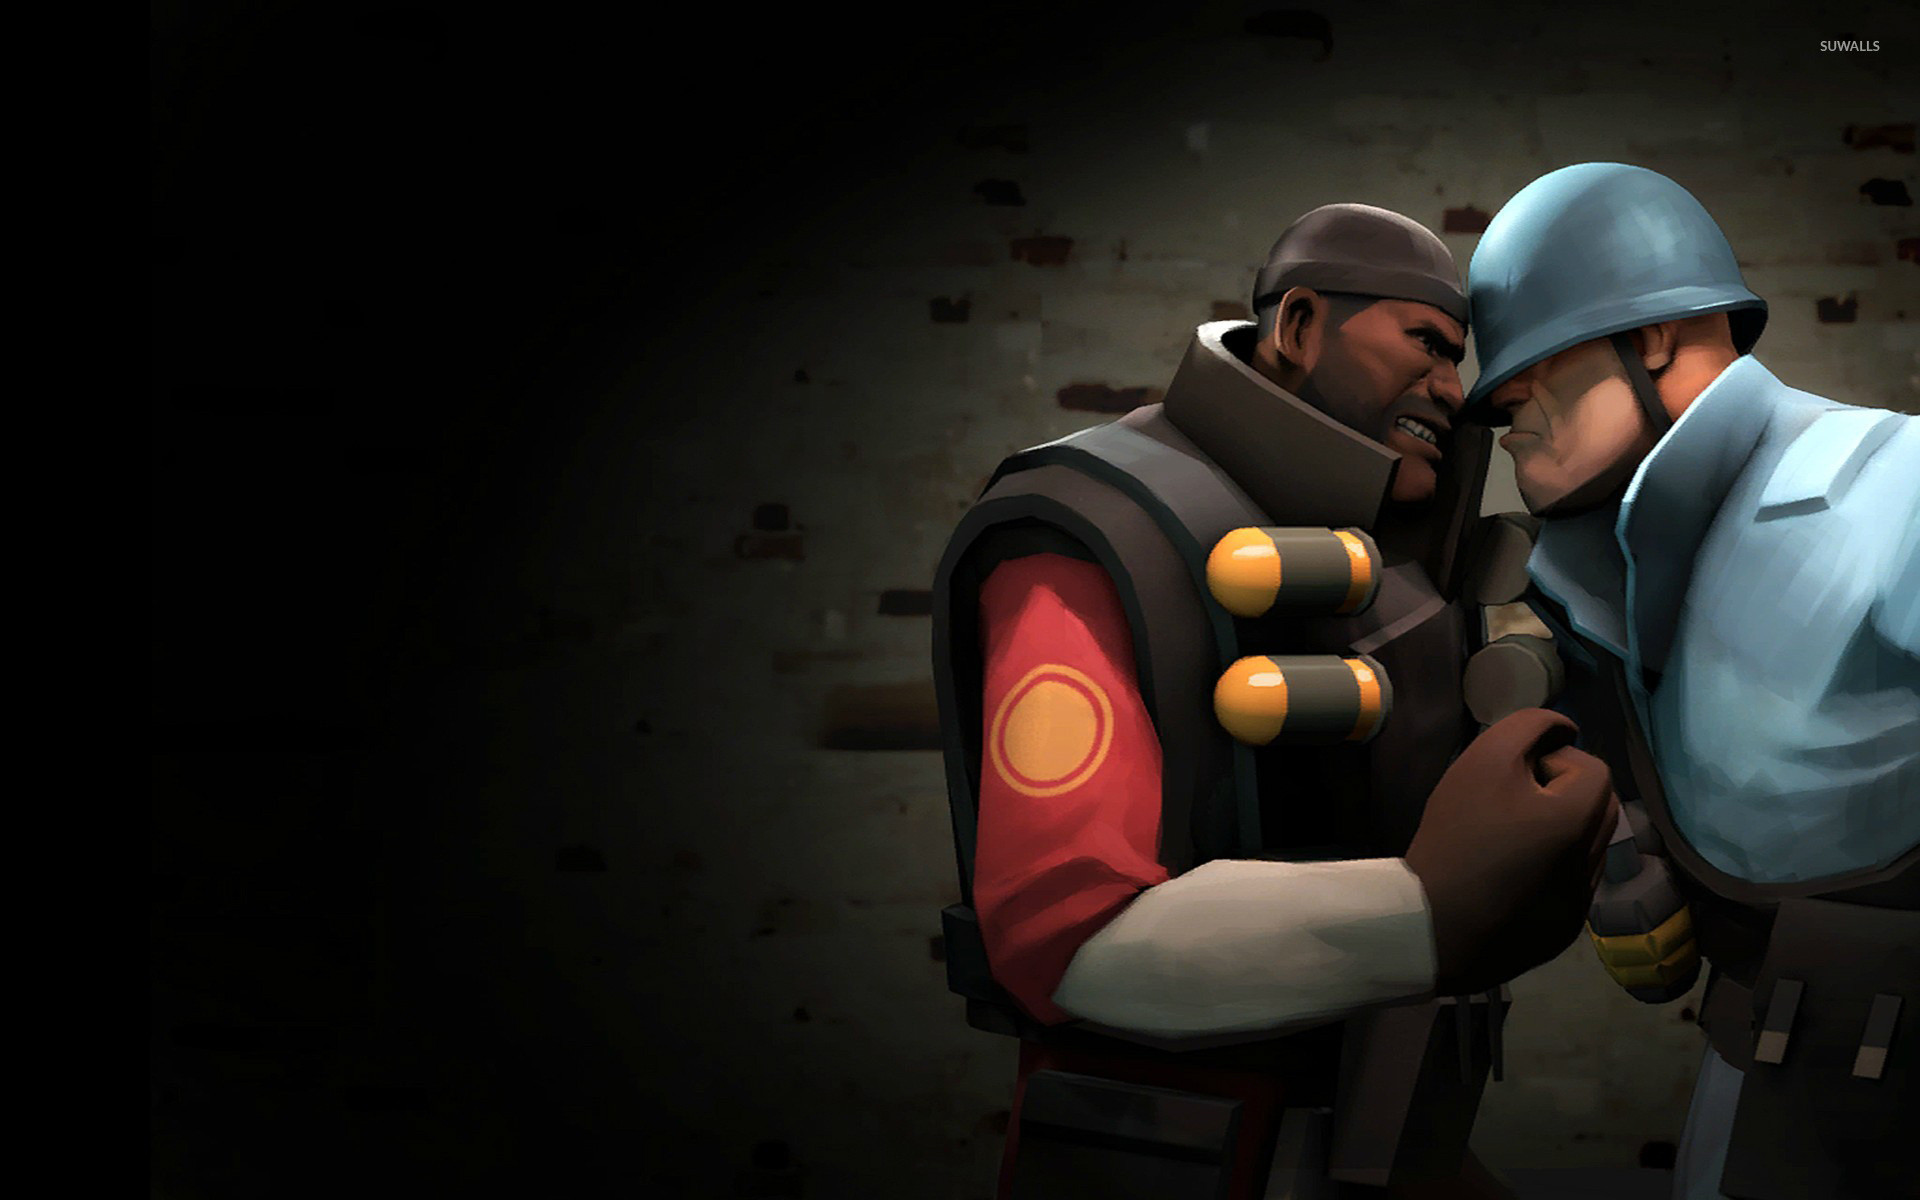 1920x1200 TF2 Demoman vs Soldier wallpaper  jpg